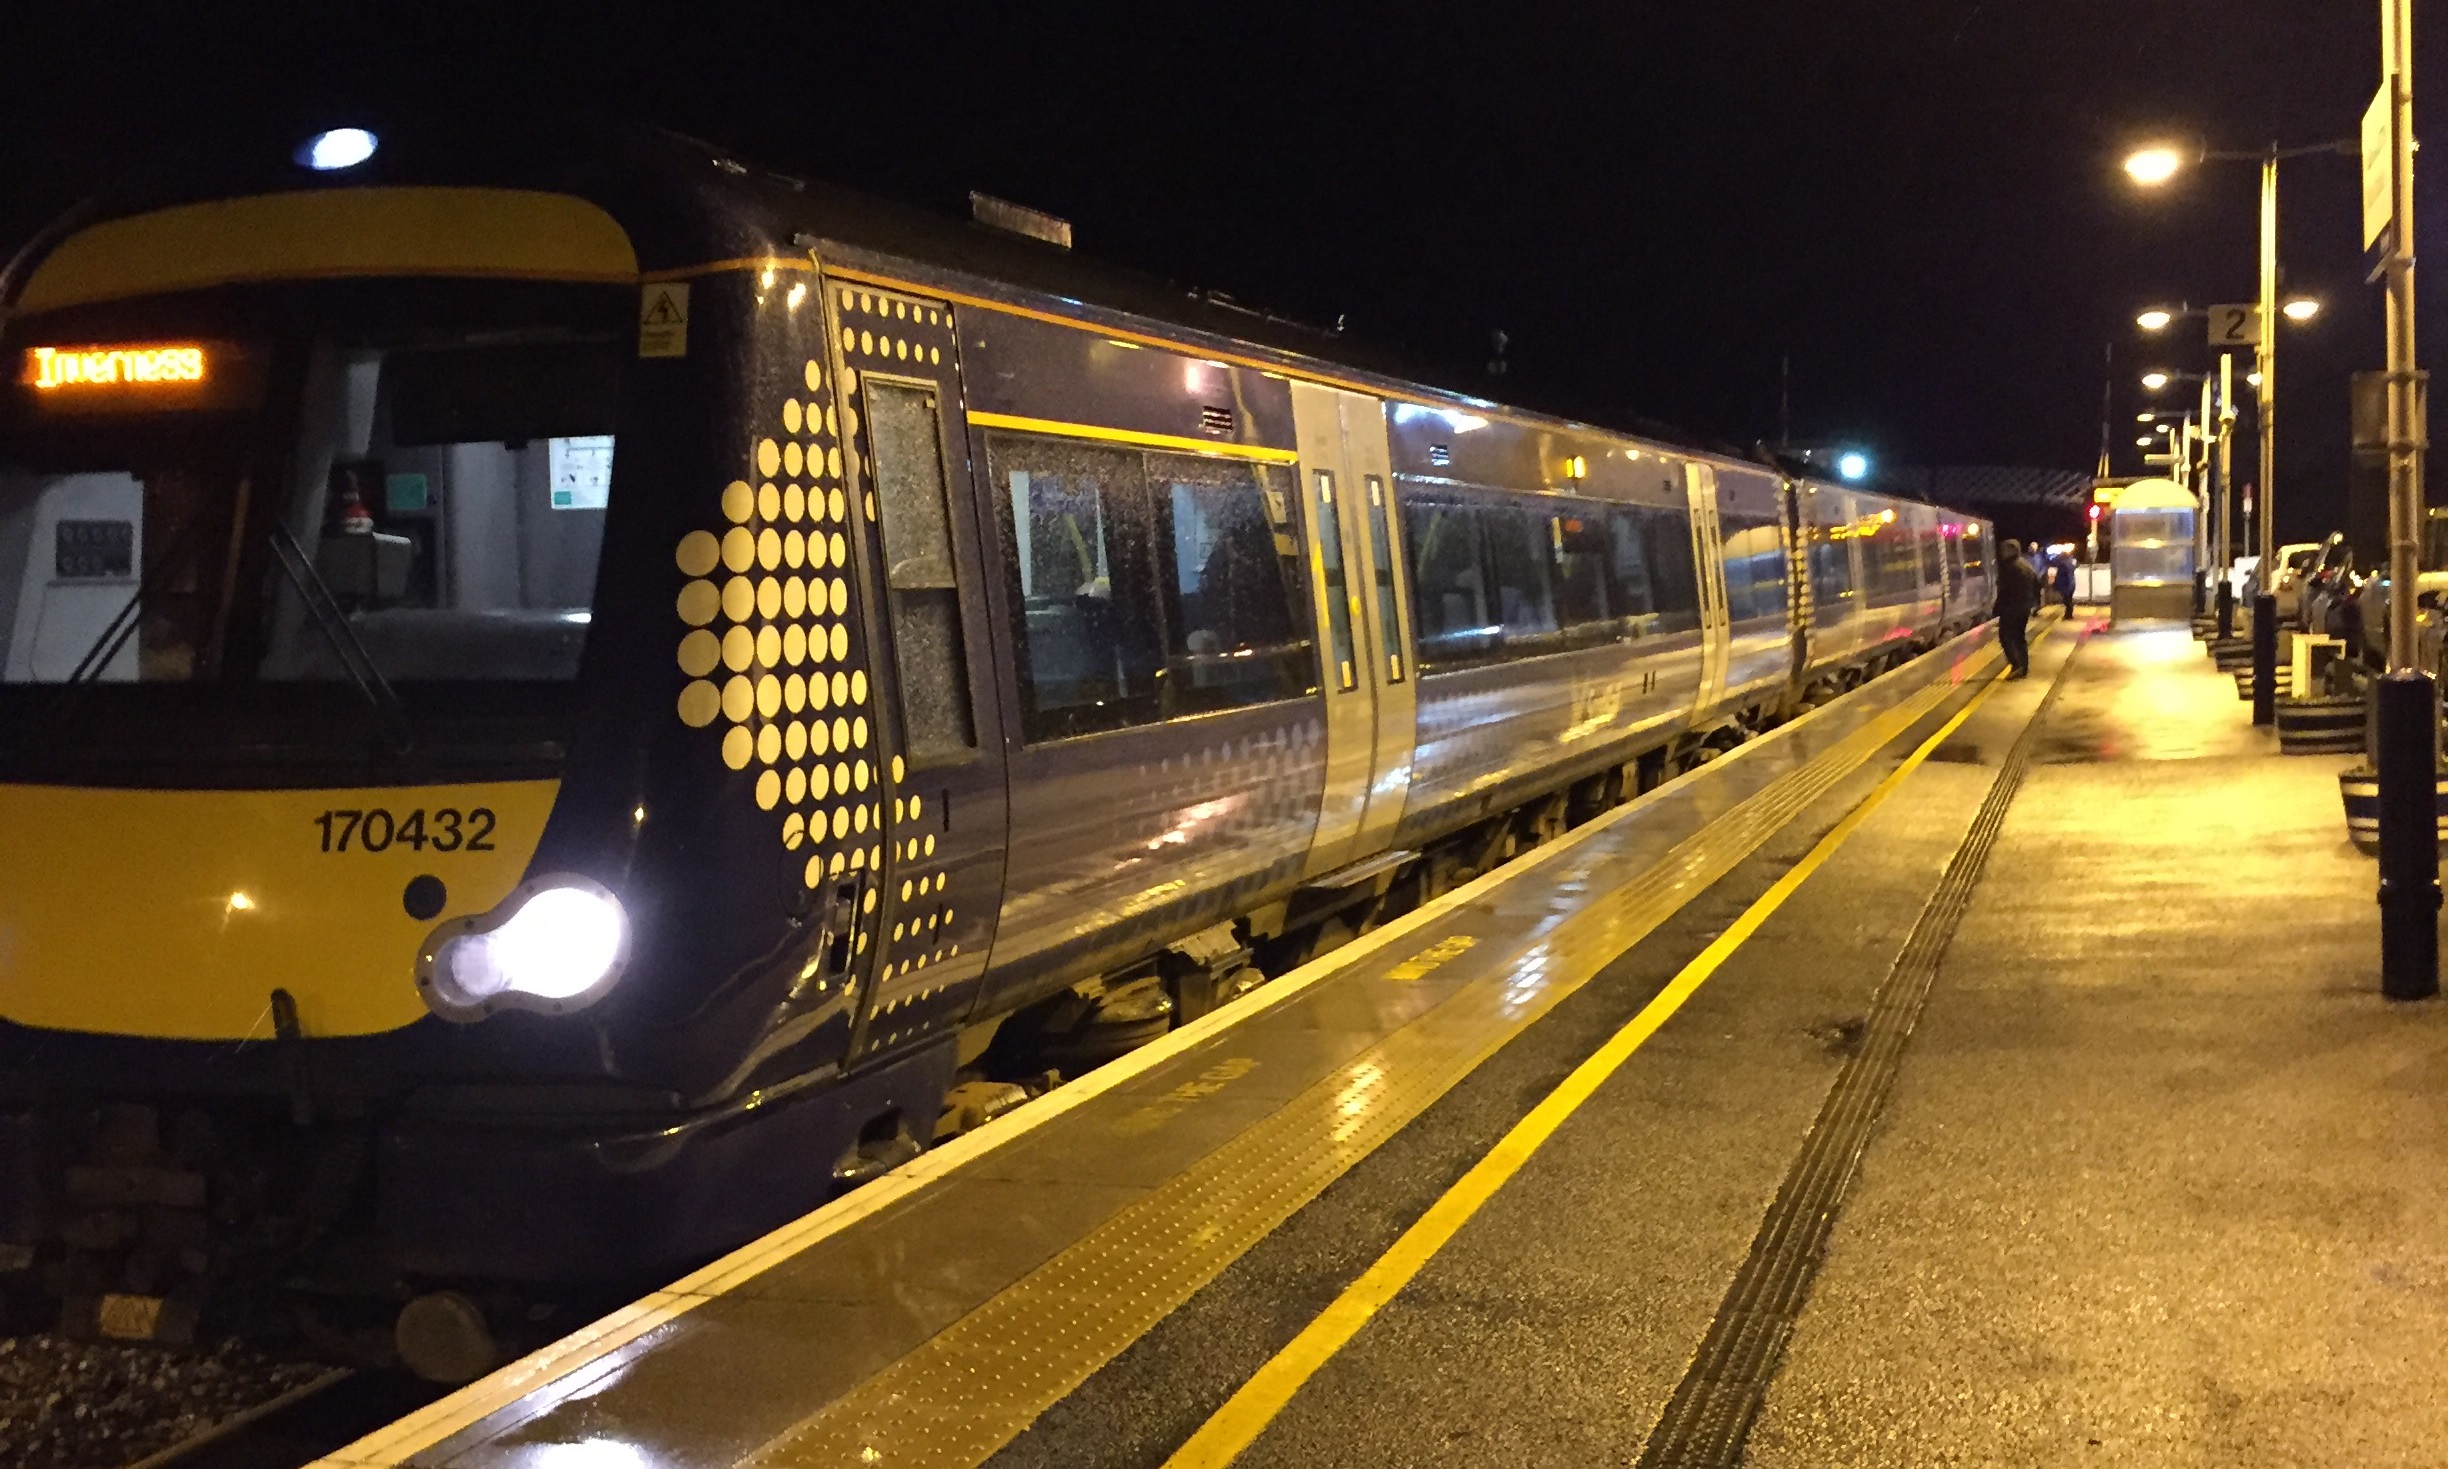 One of the trains held back on its journey to Aberdeen last night.